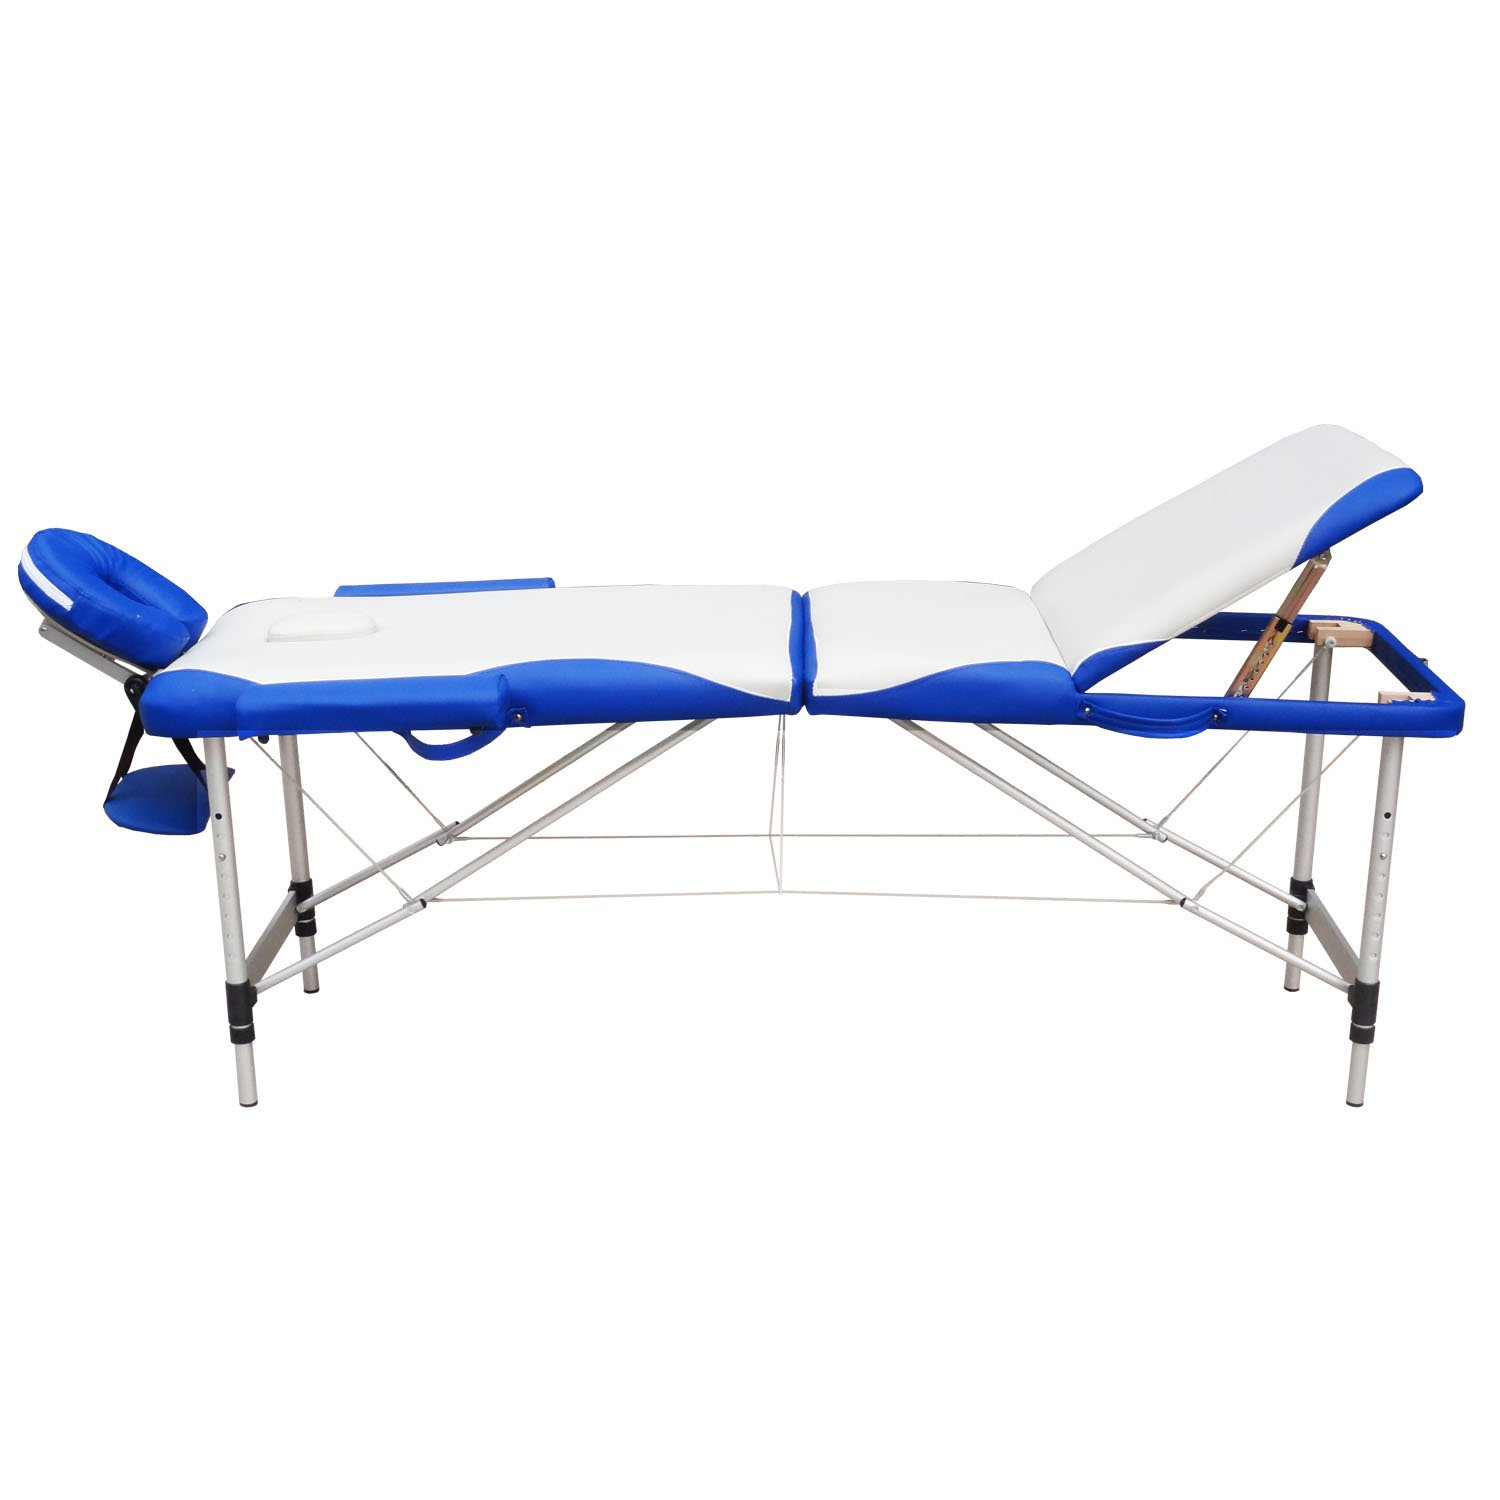 Massage Tables - WELLHOME Portable Massage Table Facial SPA Tattoo Bed Aluminium 3 Section with Free Oxford Carring Bag, Cream & Blue